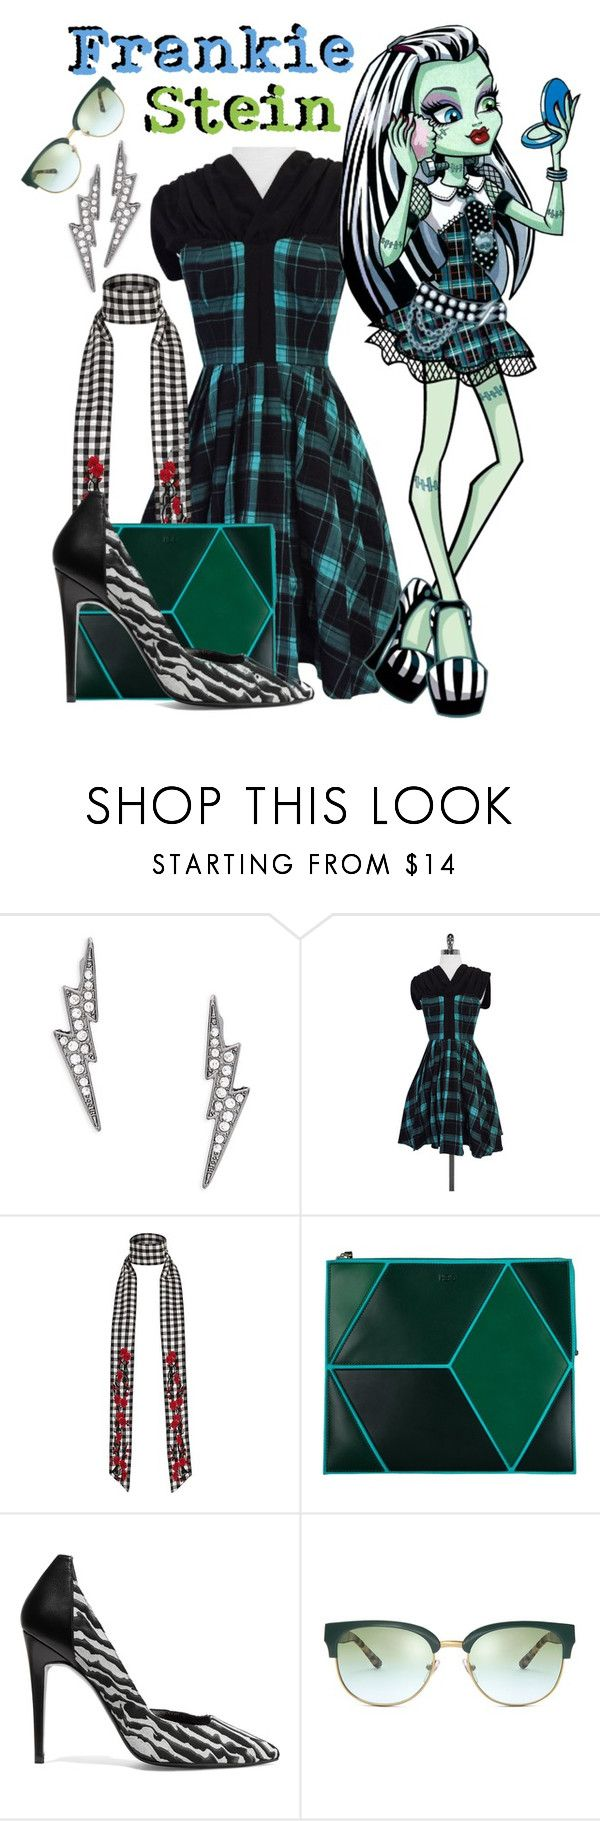 """""""Frankie Stein - MH Inspired"""" by freezespell ❤ liked on Polyvore featuring ABS by Allen Schwartz, Frock! by Tracy Reese, River Island, Heio, Pierre Hardy and Tory Burch"""